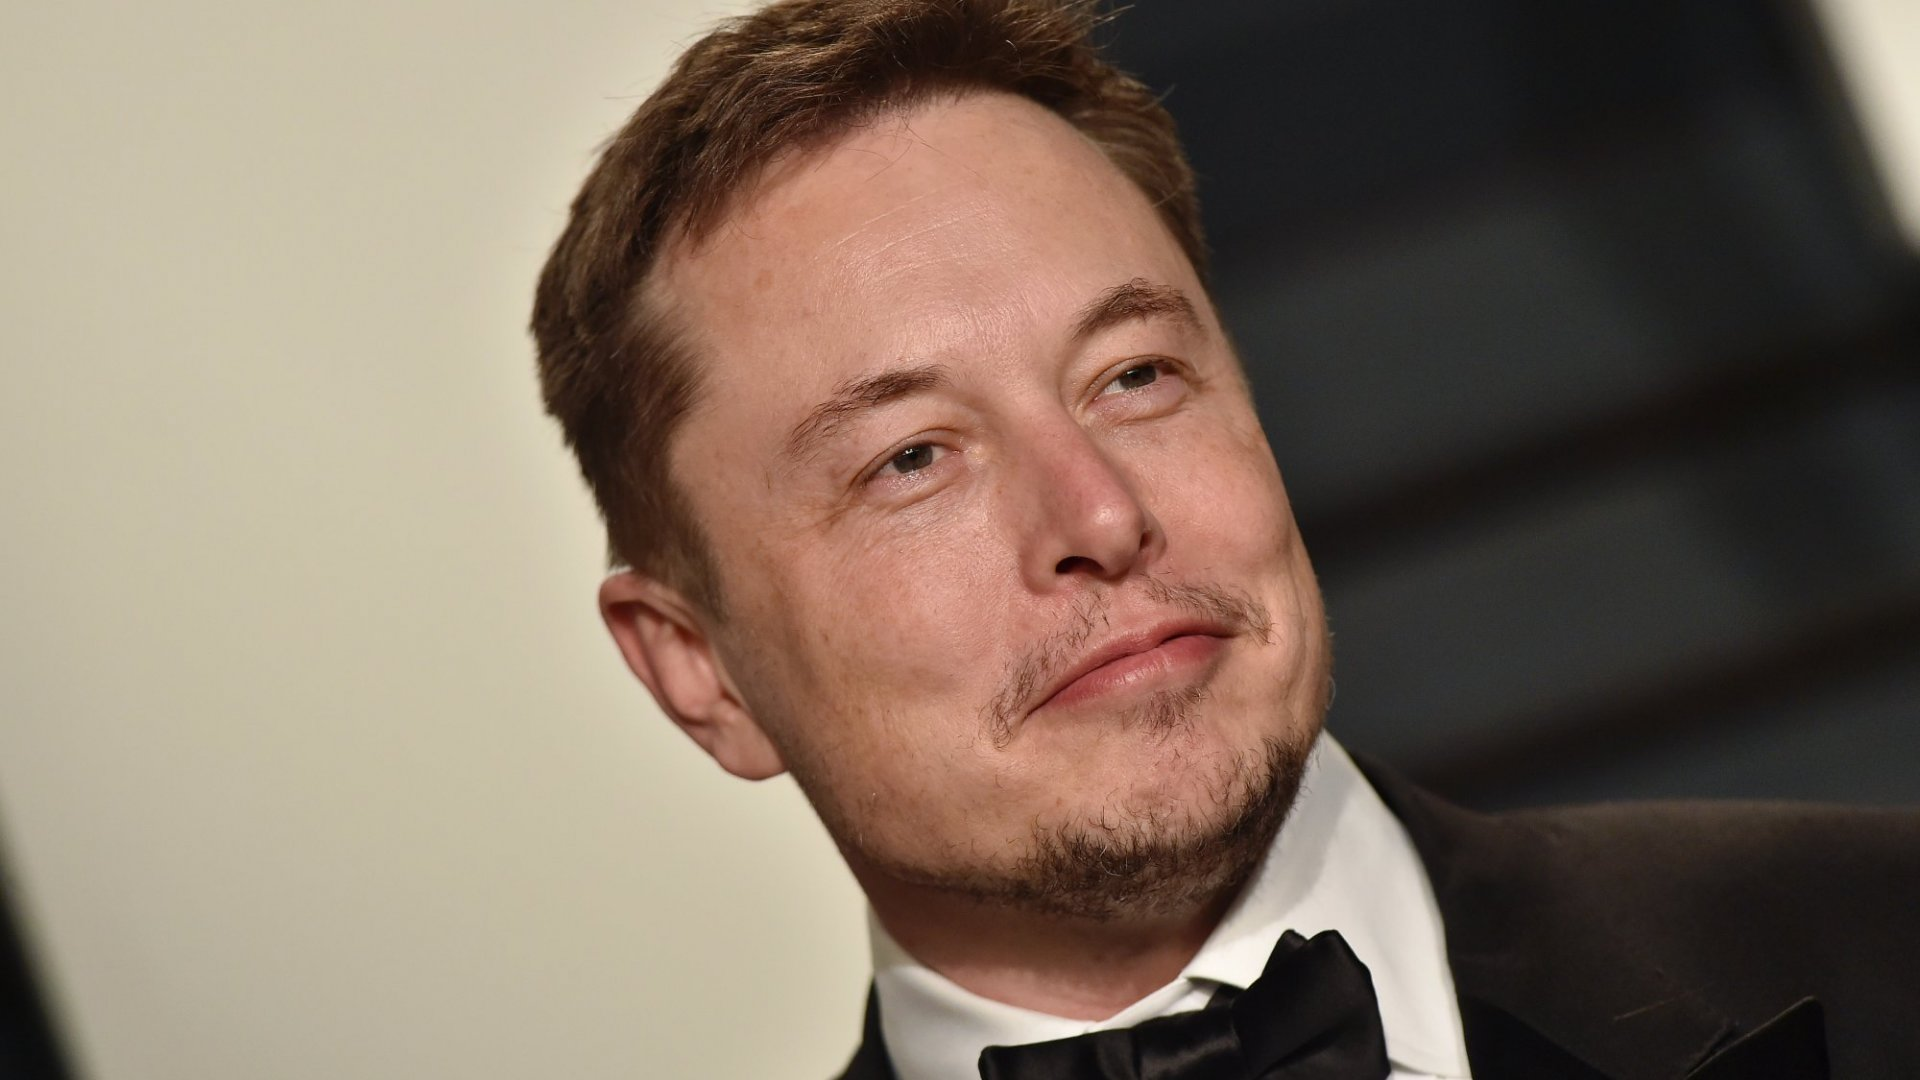 The 1 Thing Elon Musk Does Every Day (It's Not What You Think)